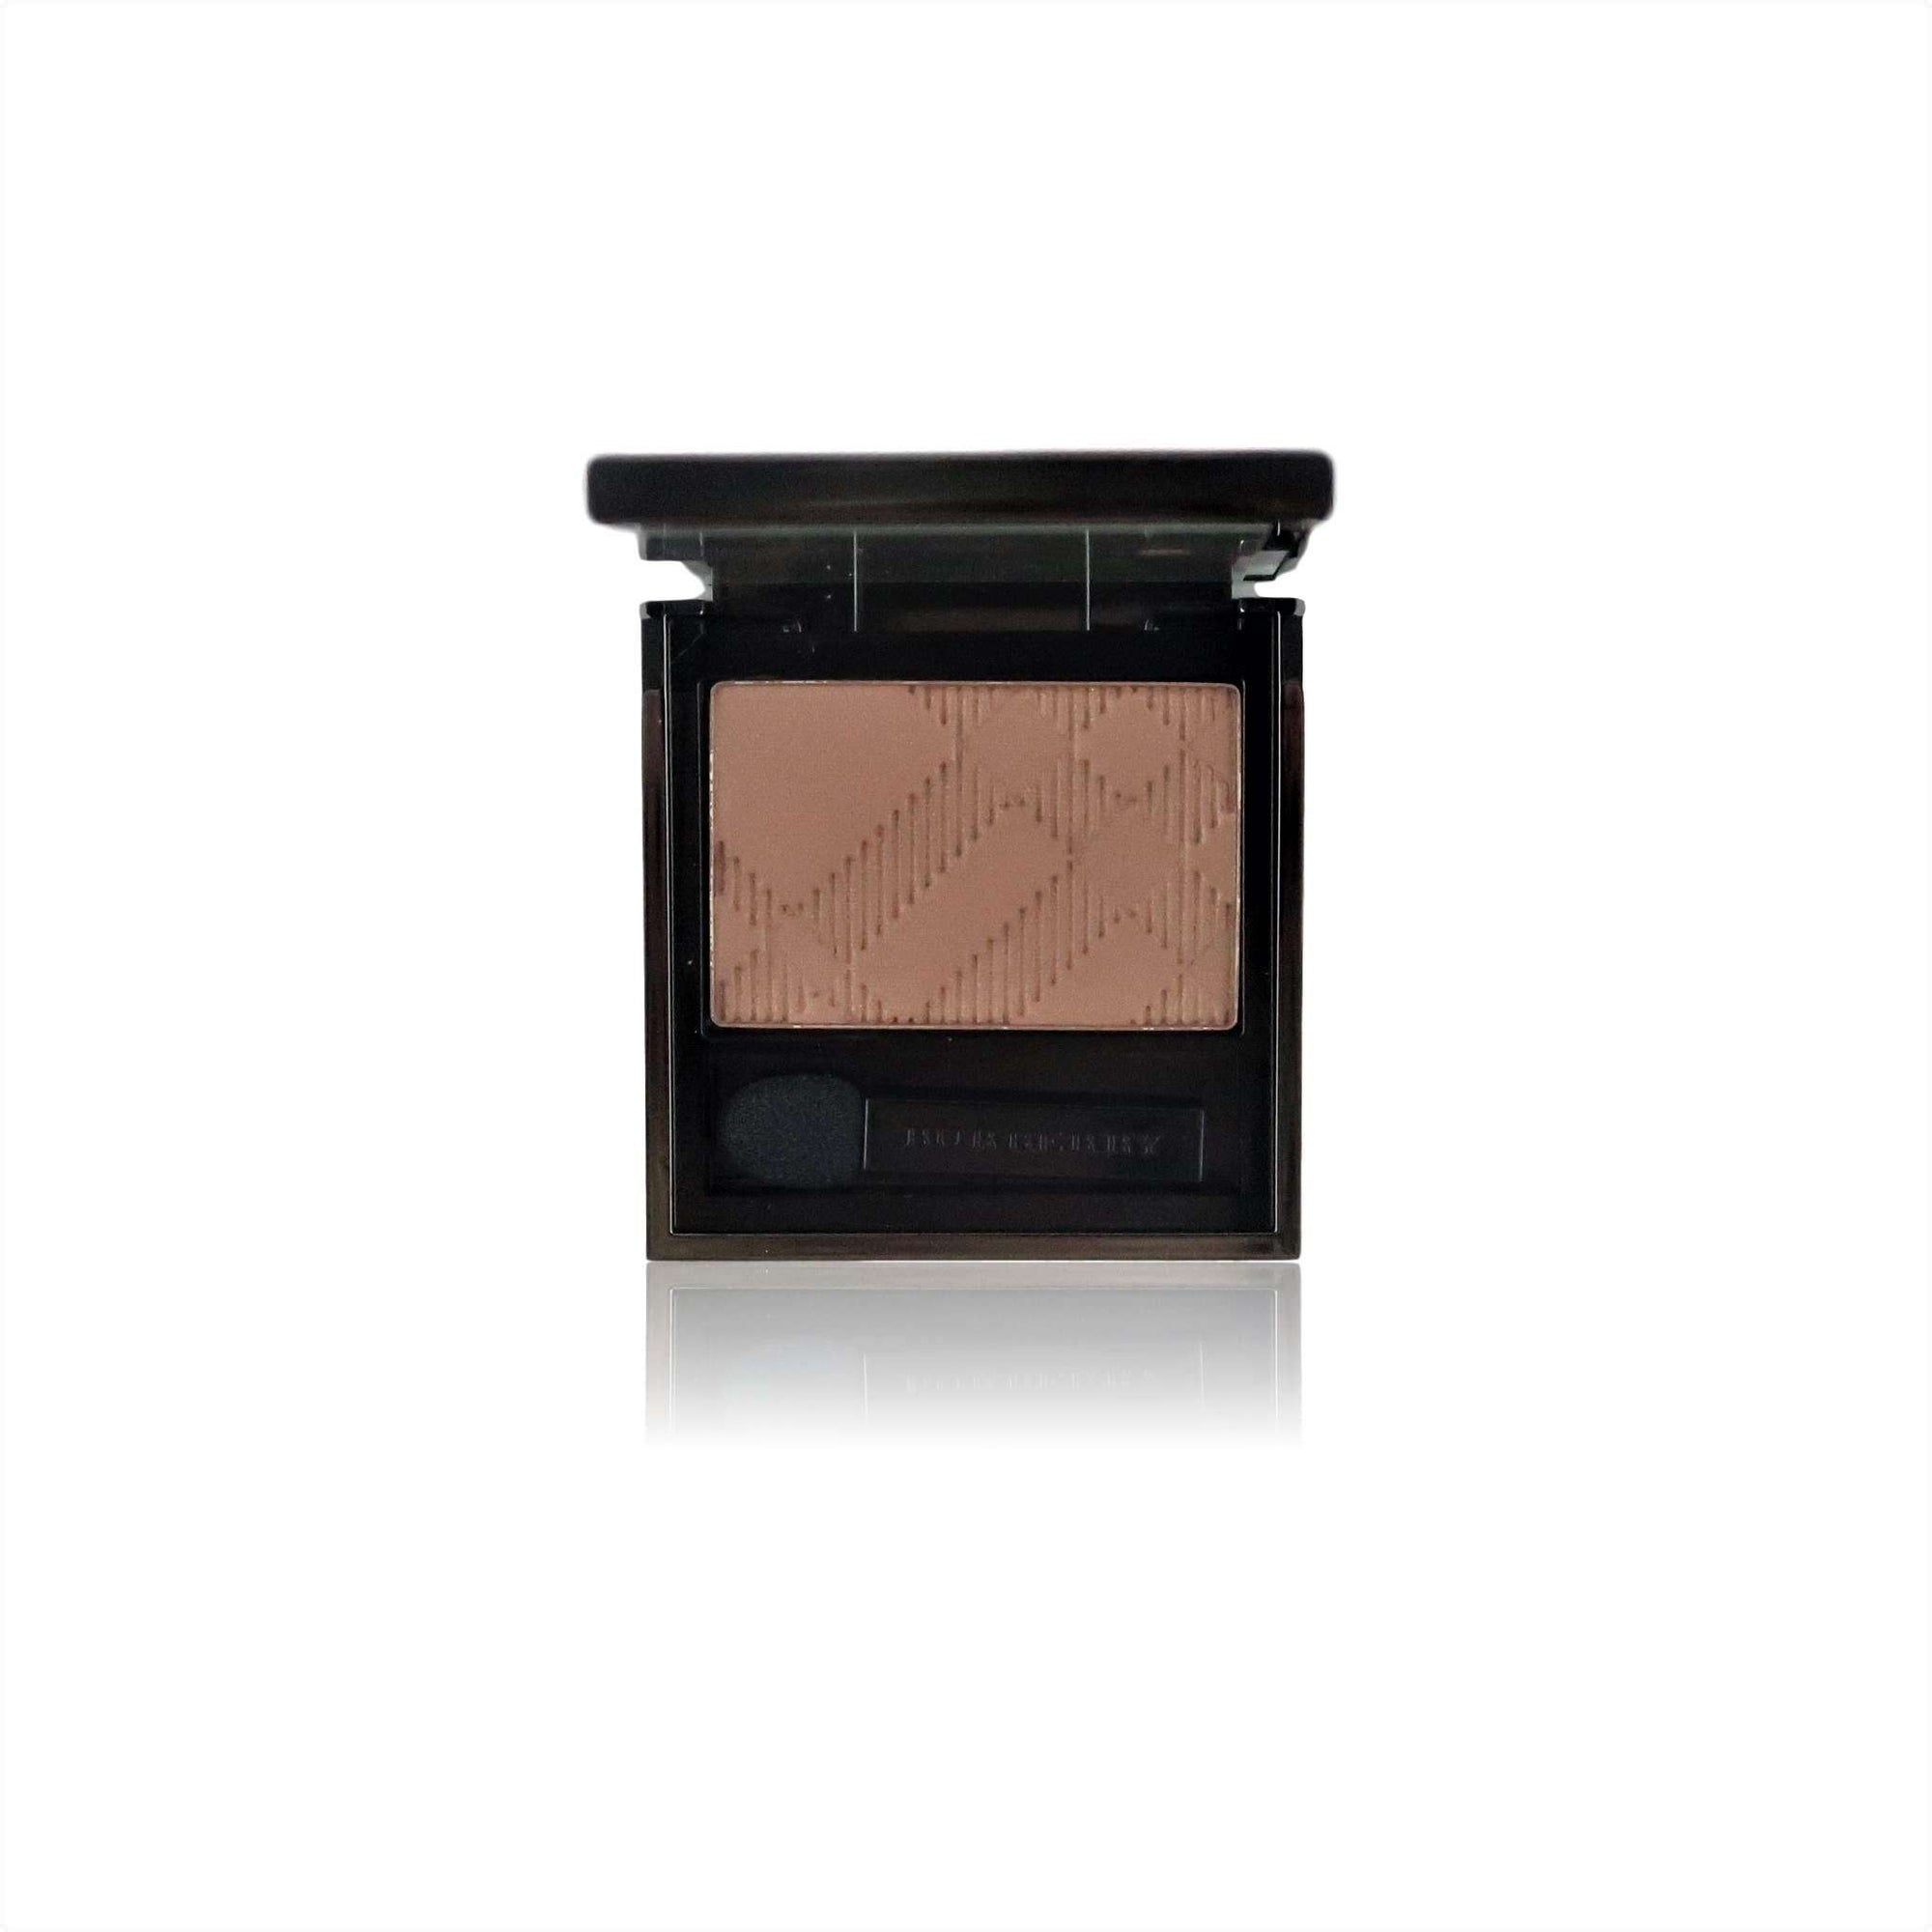 Burberry Single Eyeshadow